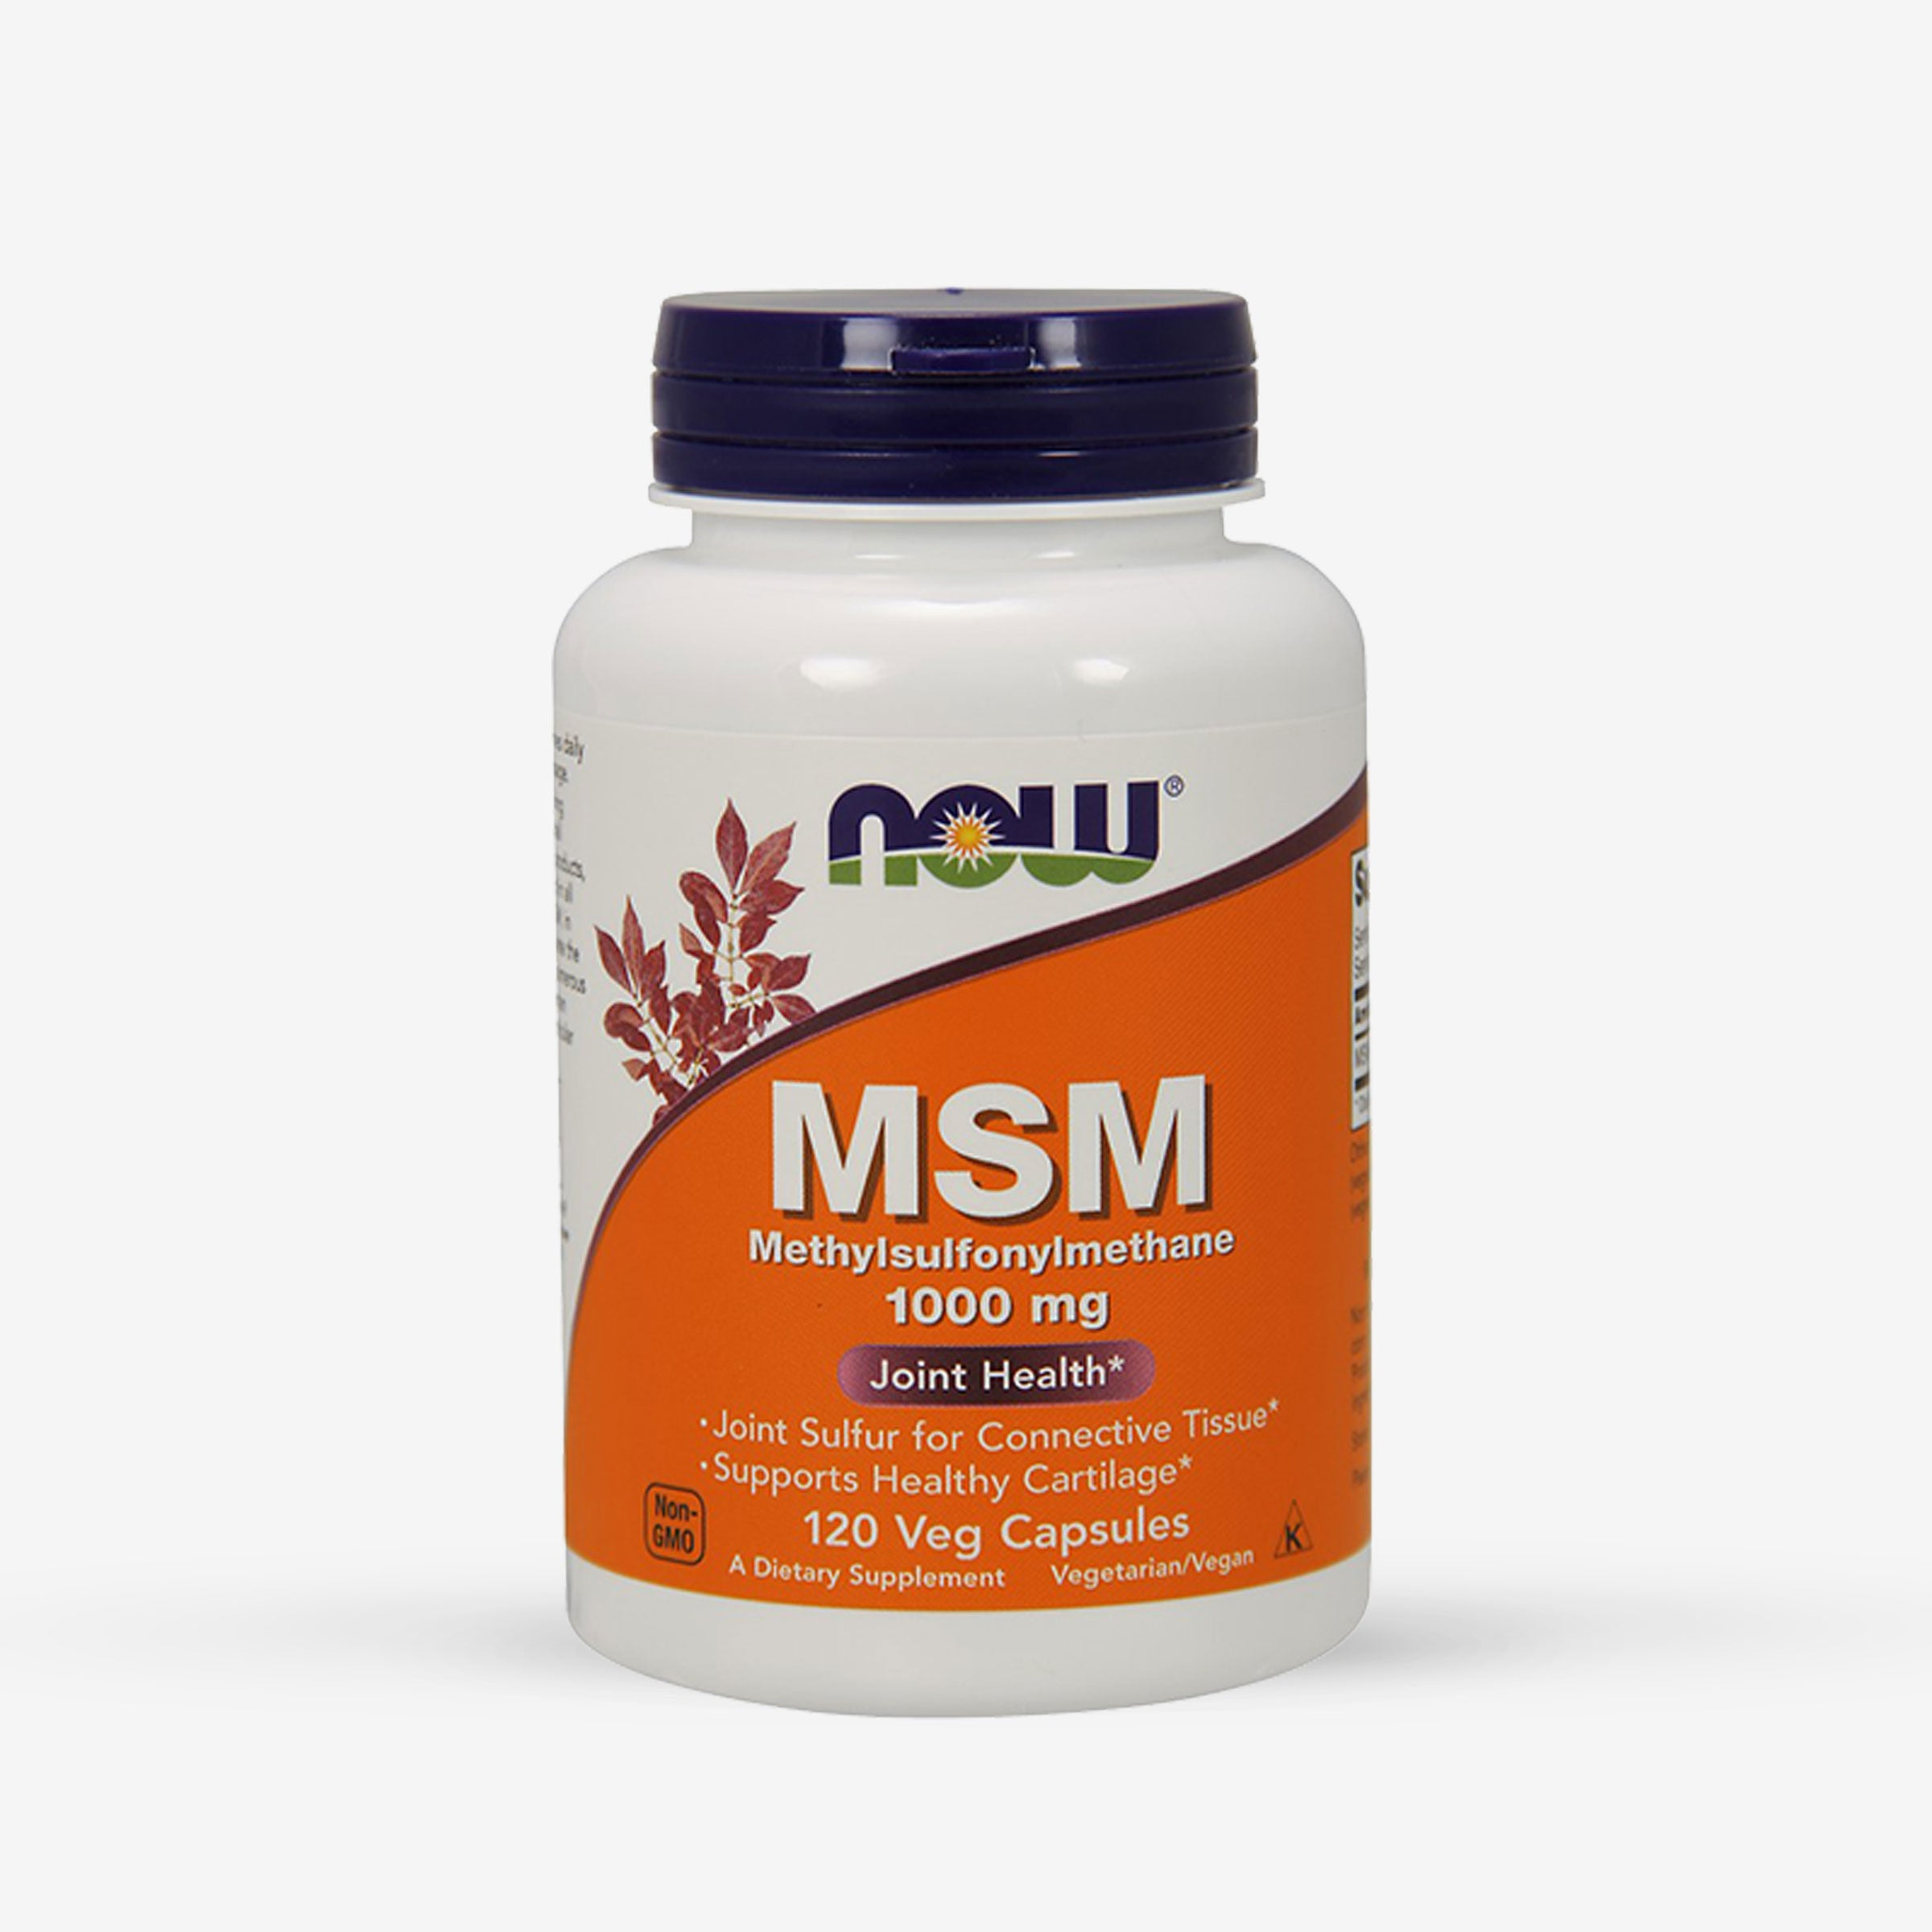 NOW® MSM Methylsulfonylmethane 1000mg